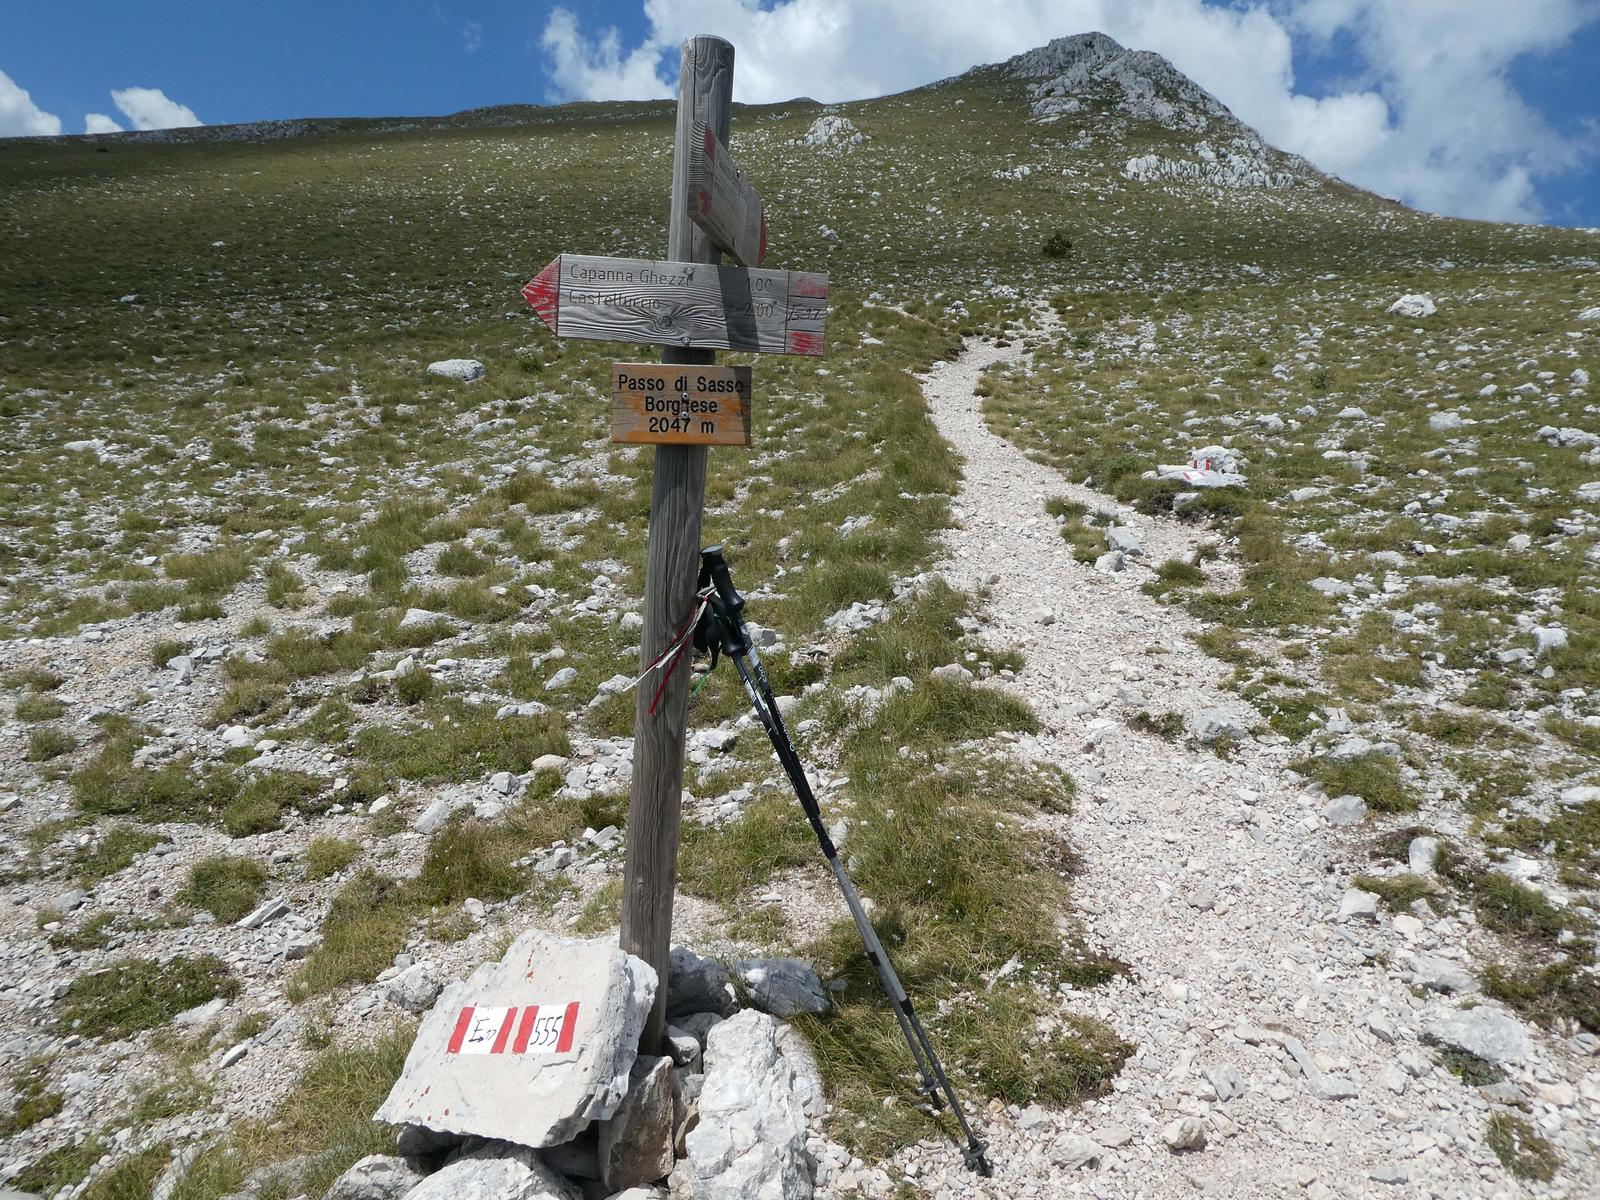 mynd af Passo di Sasso Borghese